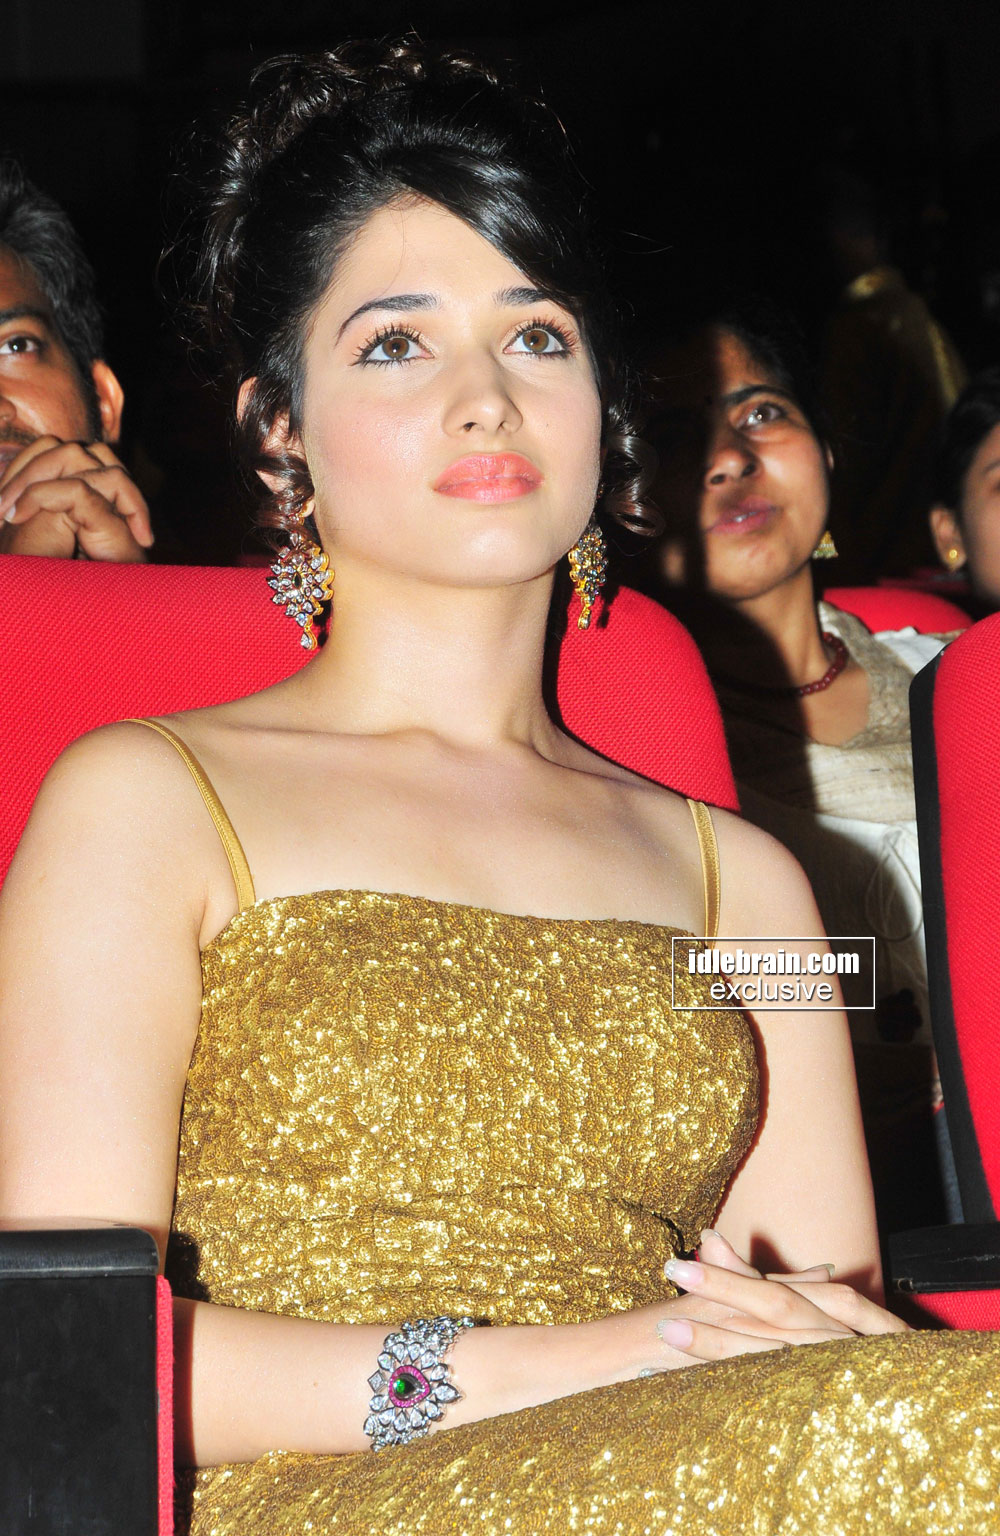 Tamanna - Images Colection